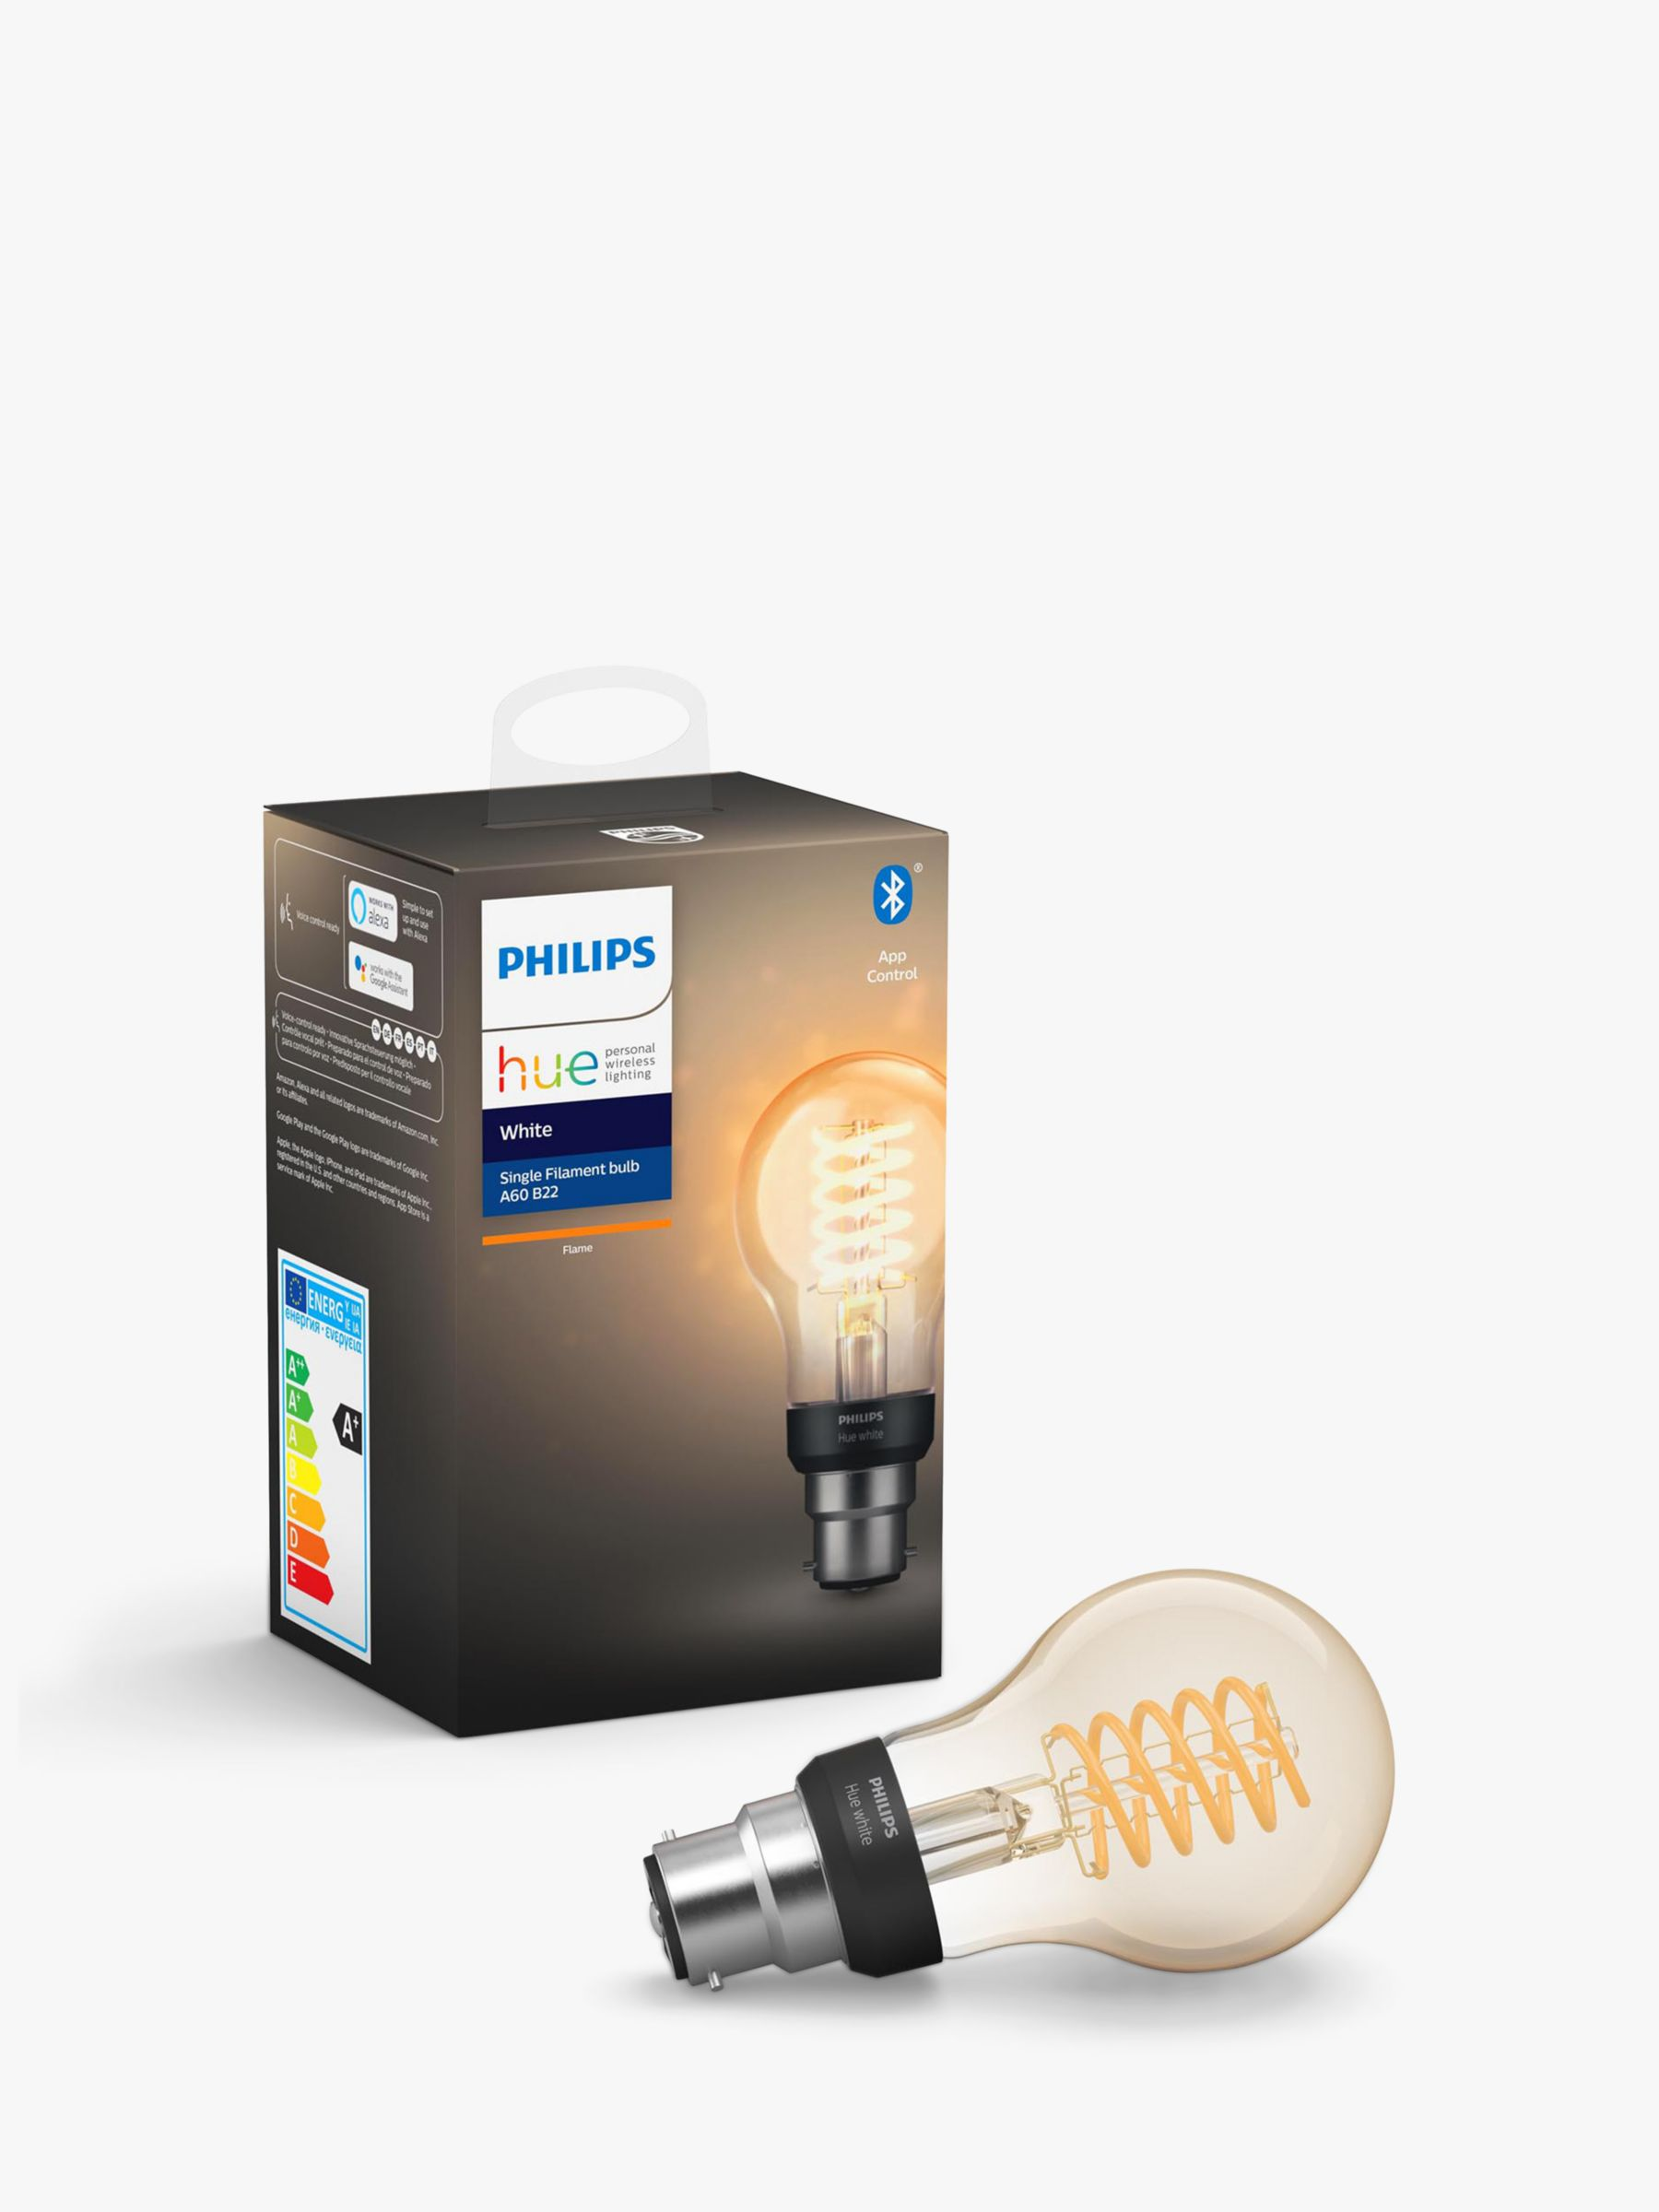 Philips Philips Hue White Ambiance Wireless Lighting 7W BC LED Dimmable Classic Filament Bulb, A60 B22